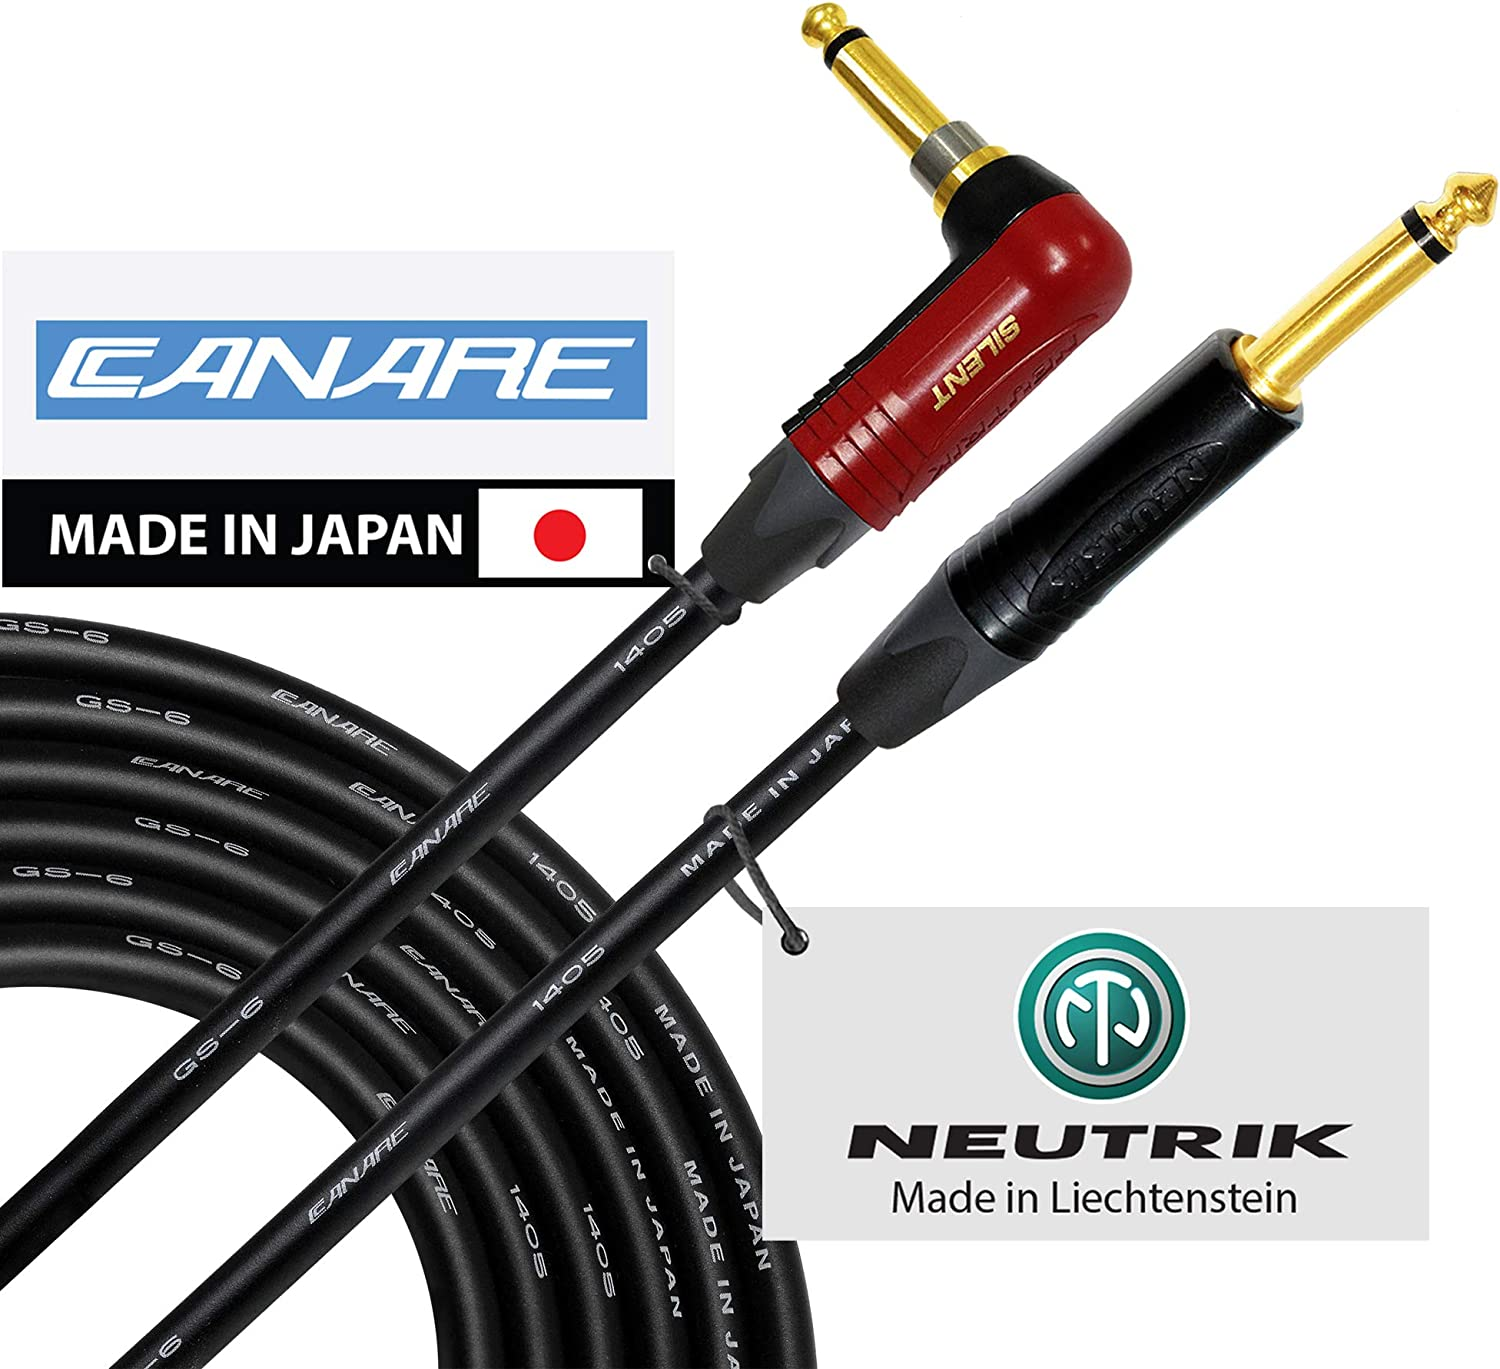 25 Foot – Canare GS-6 - Neutrik Gold Plated Silent Plug - Guitar Bass Instrument Cable - Straight to Angled 1/4 Inch Plugs - CUSTOM MADE By WORLDS BEST CABLES